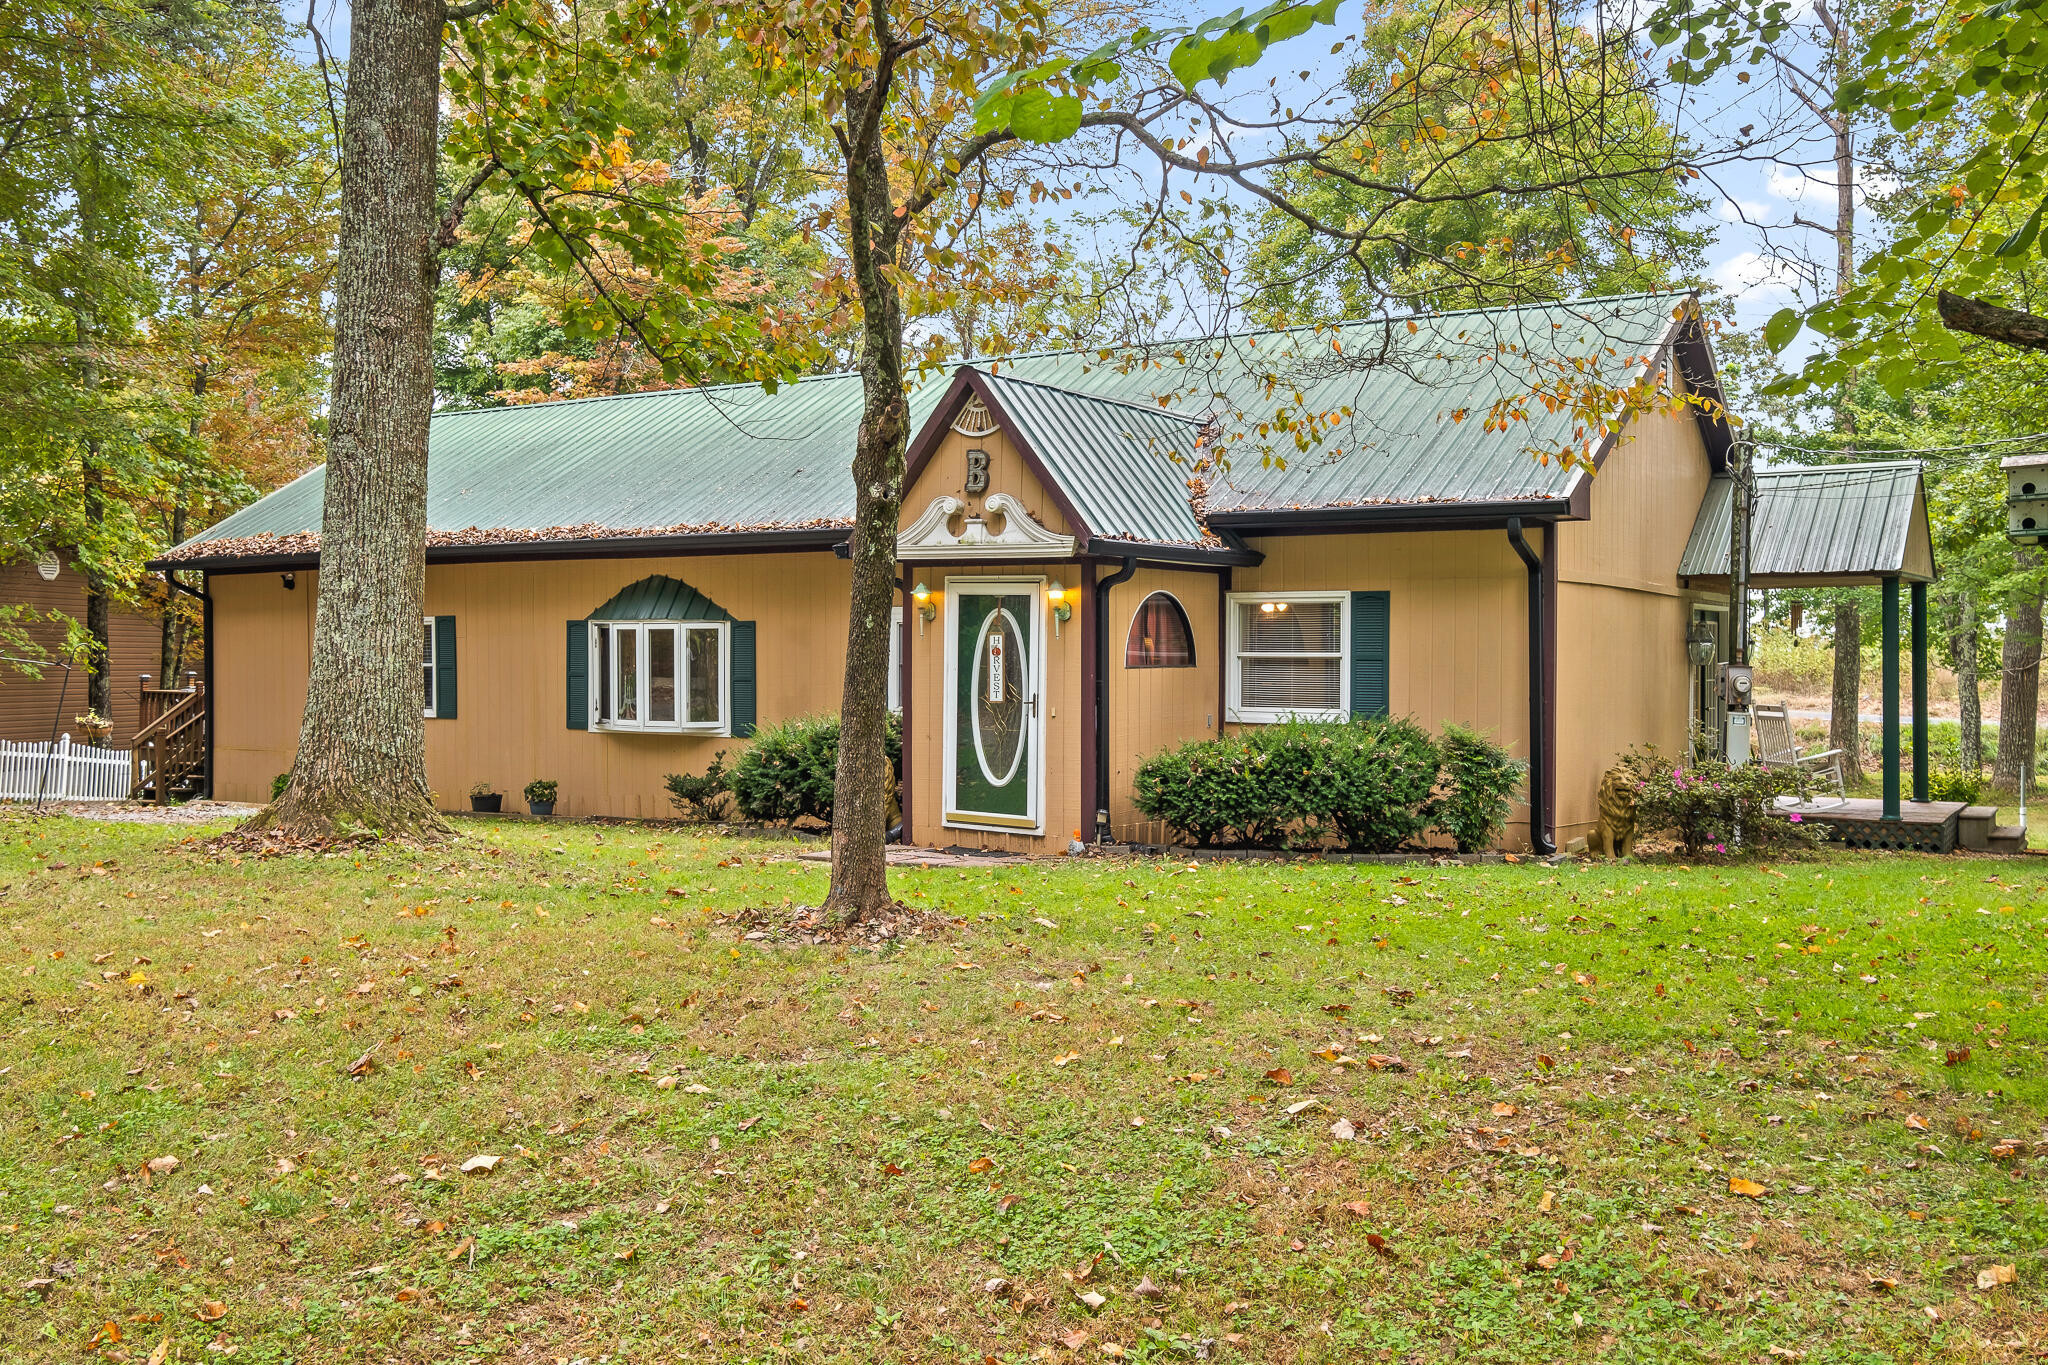 2-Bedroom House In Lookout Mountain